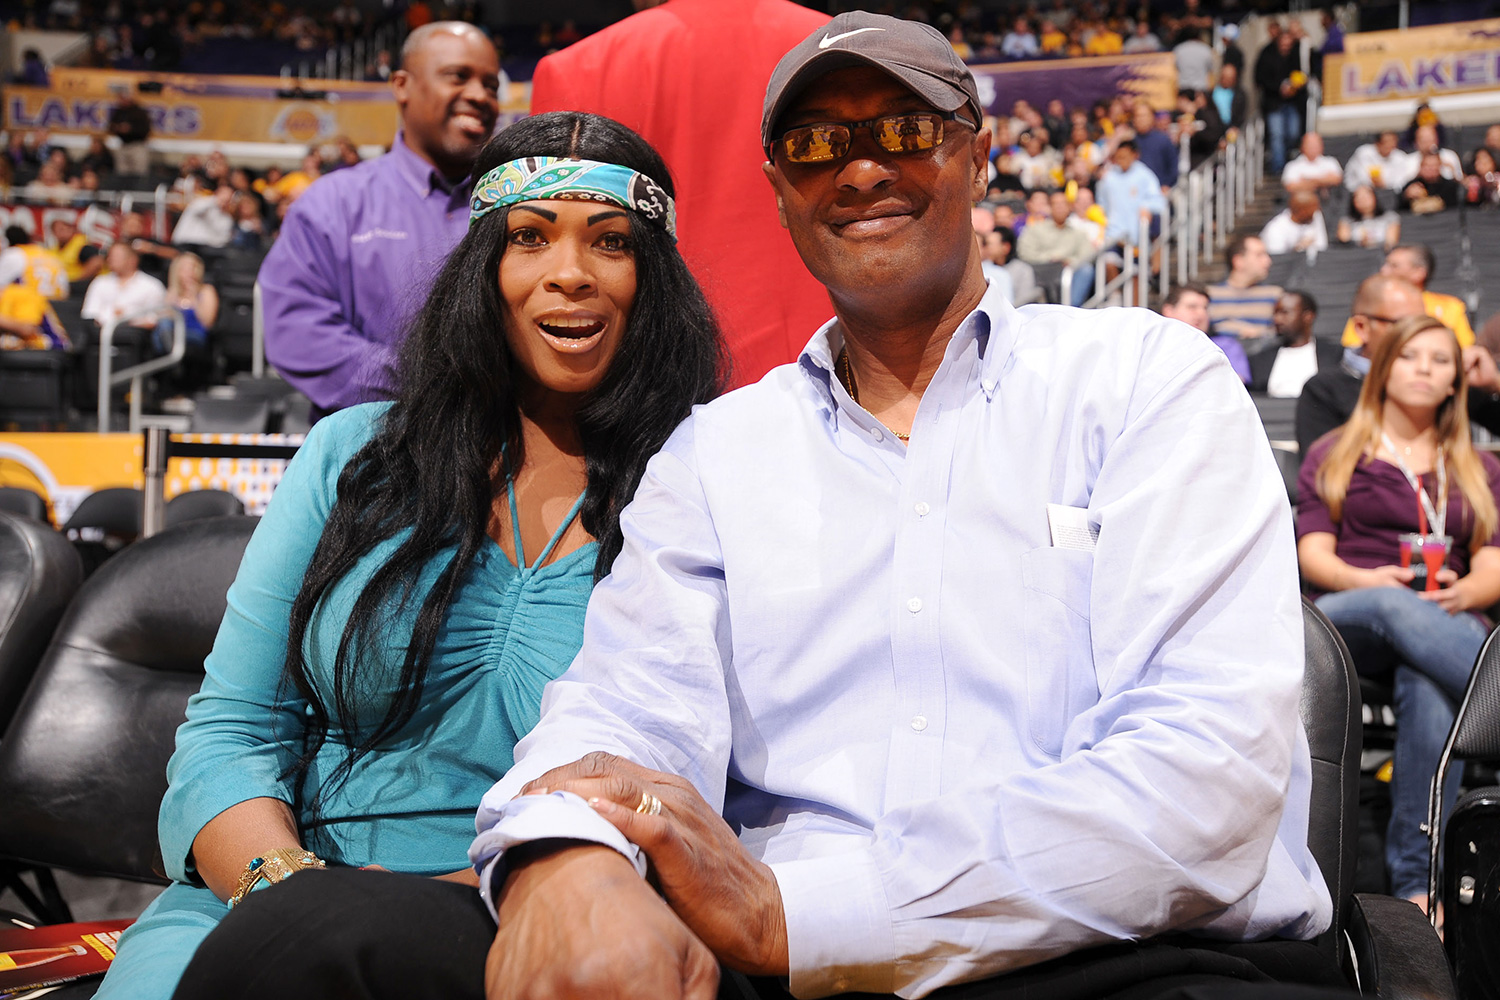 Pam and Joe Bryant, parents of Kobe Bryant #24 of the Los Angeles Lakers, attend a game between the Oklahoma City Thunder and the Los Angeles Lakers in Game Five of the Western Conference Quarterfinals during the 2010 NBA Playoffs at Staples Center on April 27, 2010 in Los Angeles